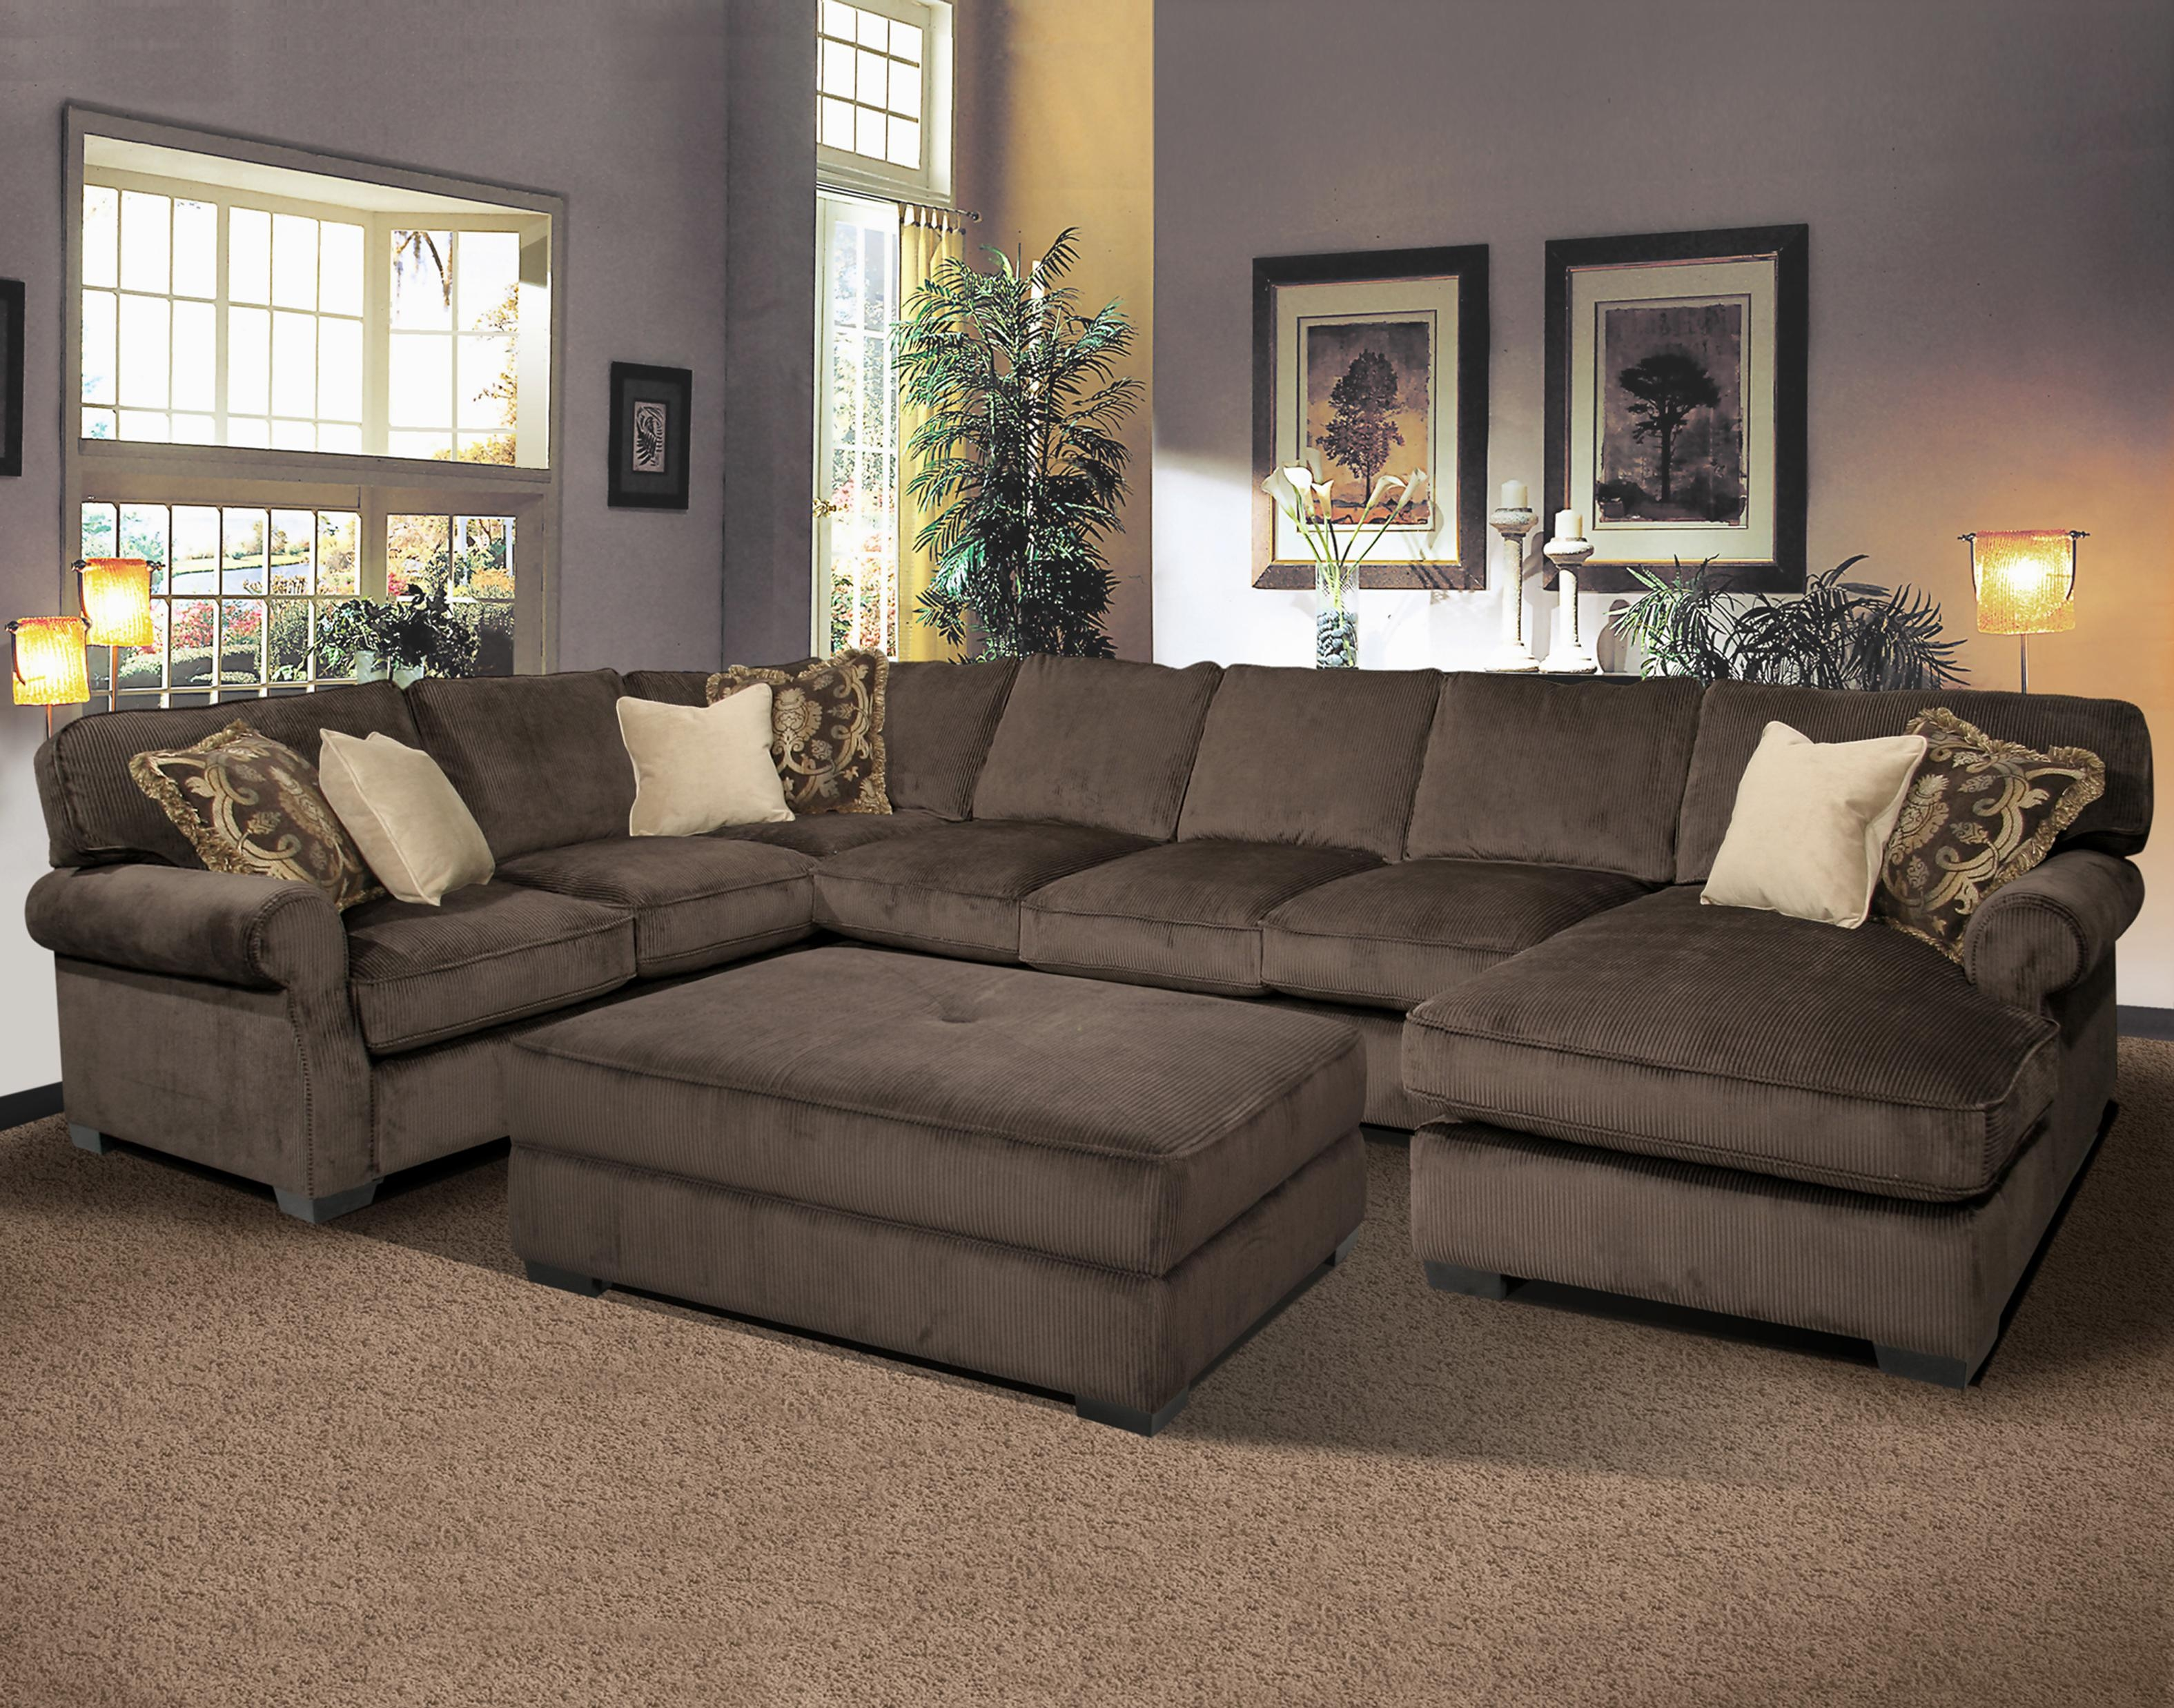 Popular Photo of 7 Seat Sectional Sofa